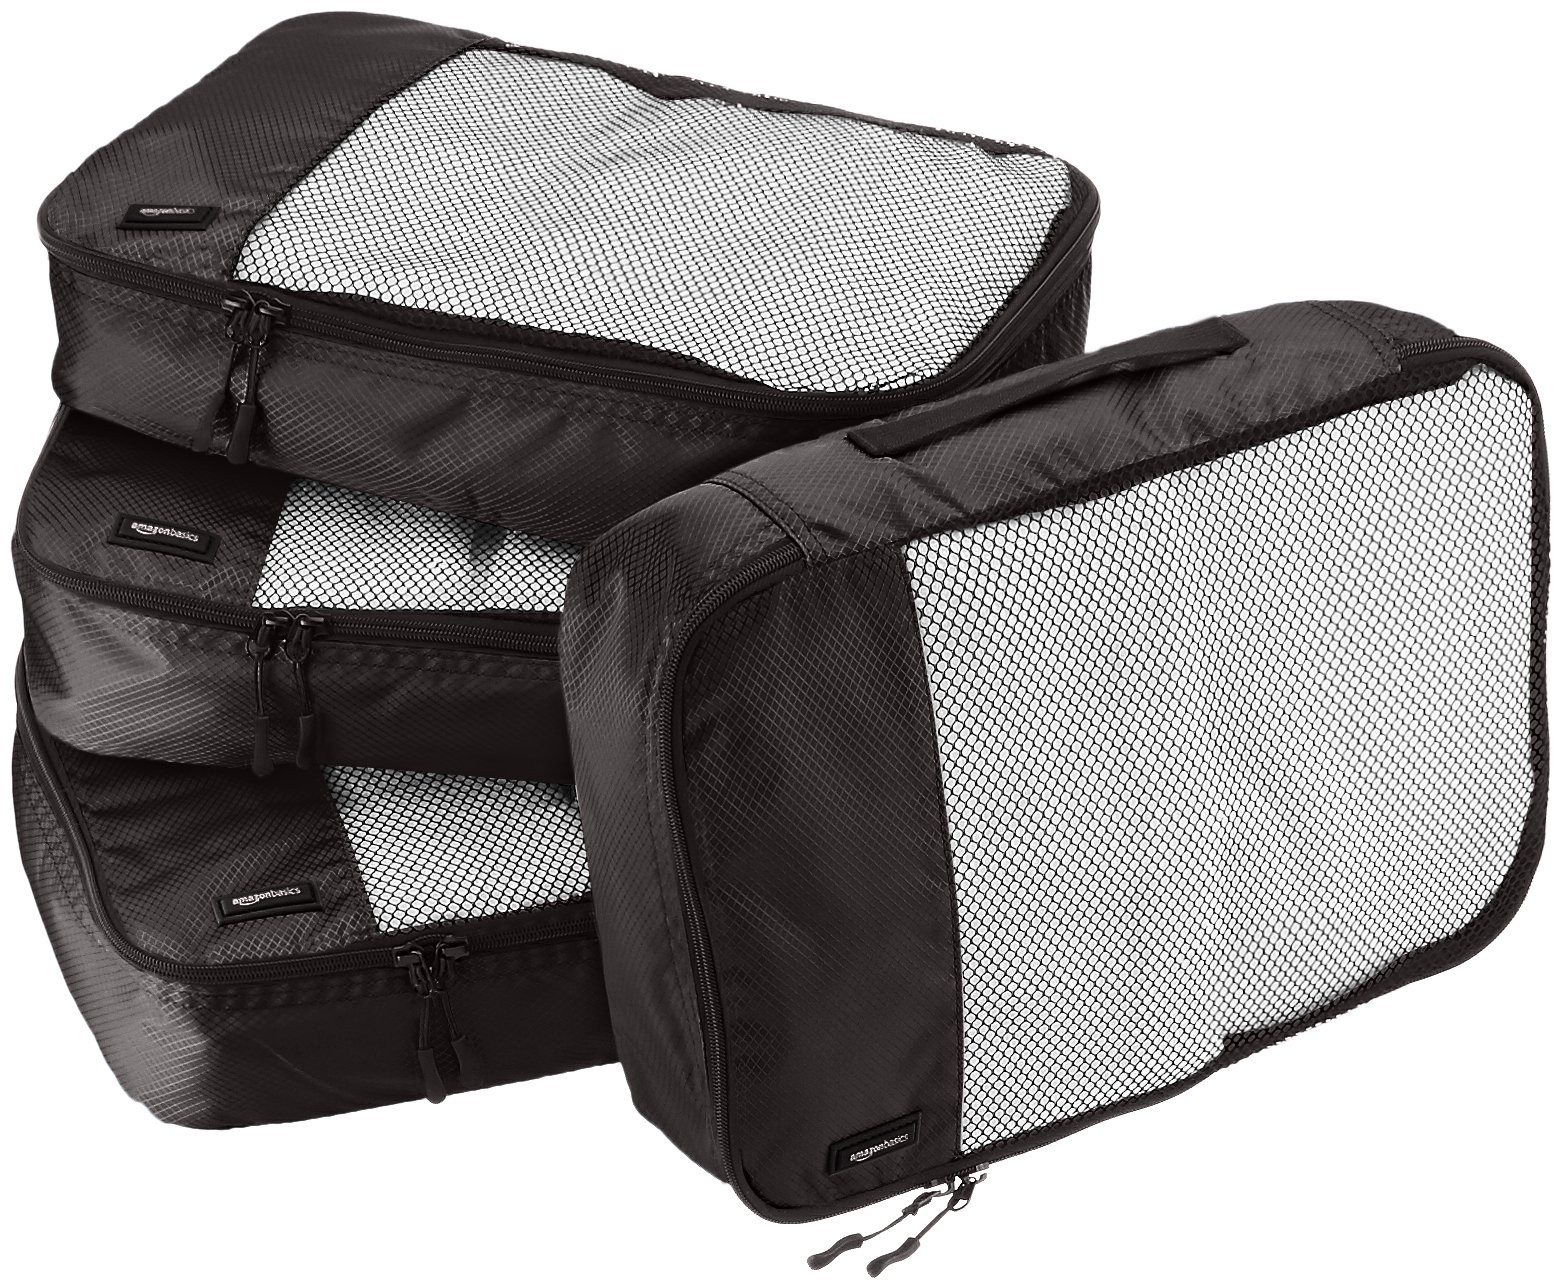 AmazonBasics 4 Piece Packing Travel Organizer Cubes Set - Medium, Black by AmazonBasics